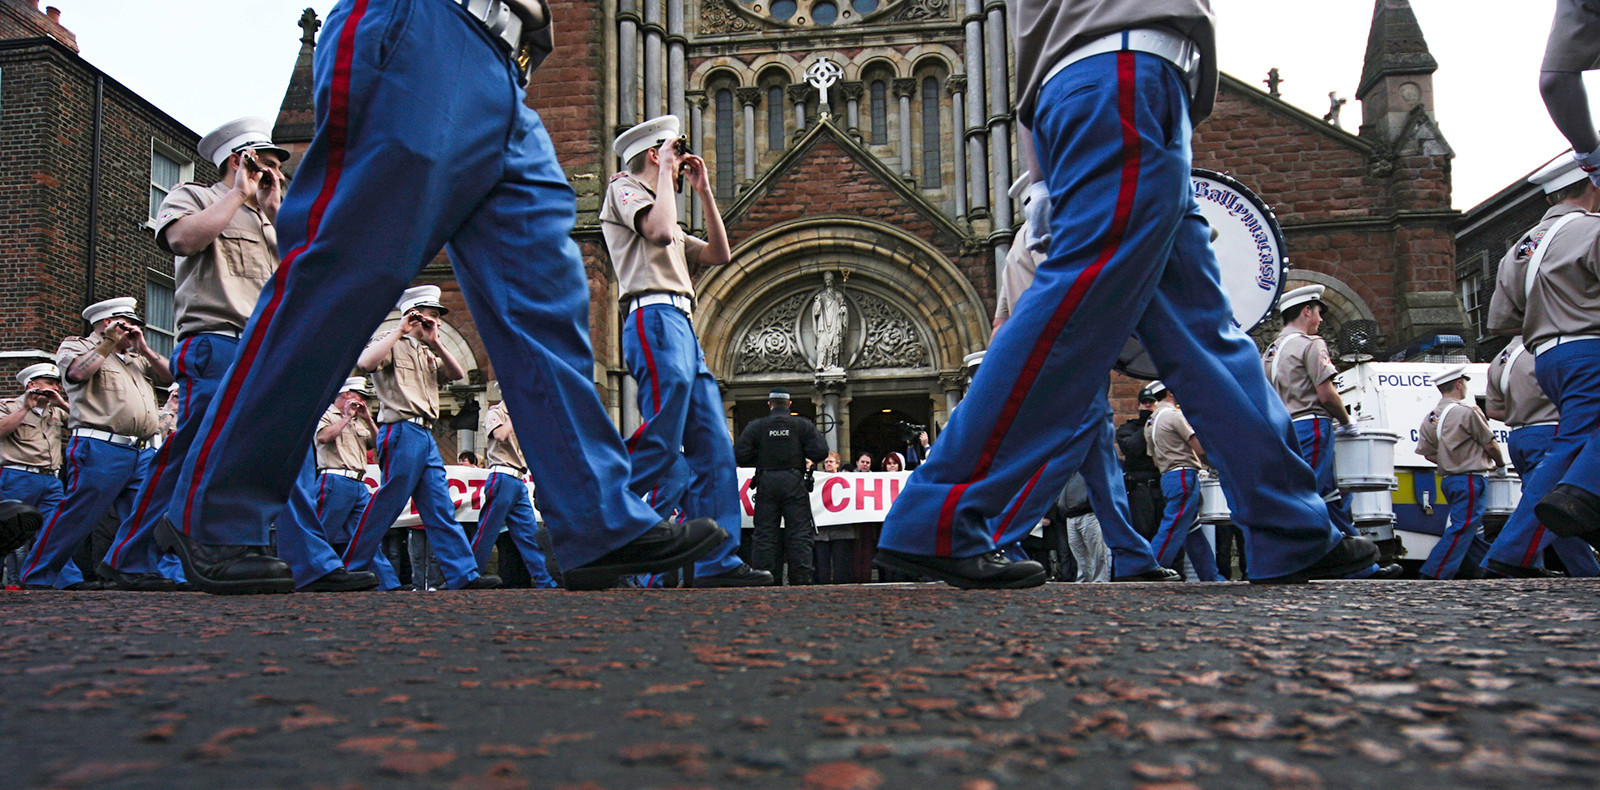 COLOUR - Marching Feet by John Hanvey (9 marks)